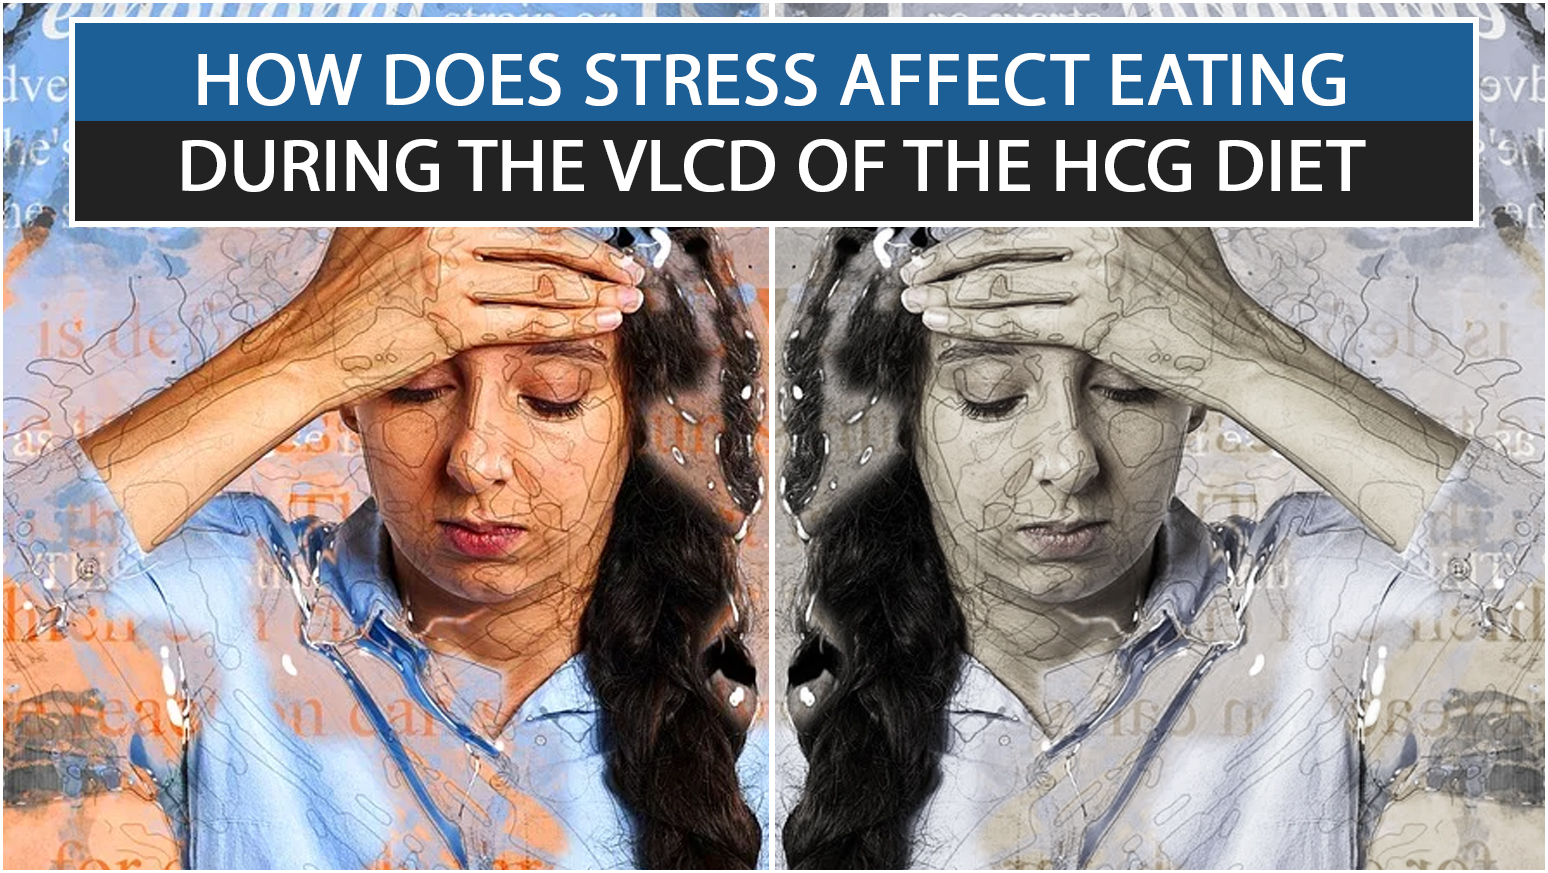 HOW DOES STRESS AFFECT EATING DURING THE VLCD OF THE HCG DIET